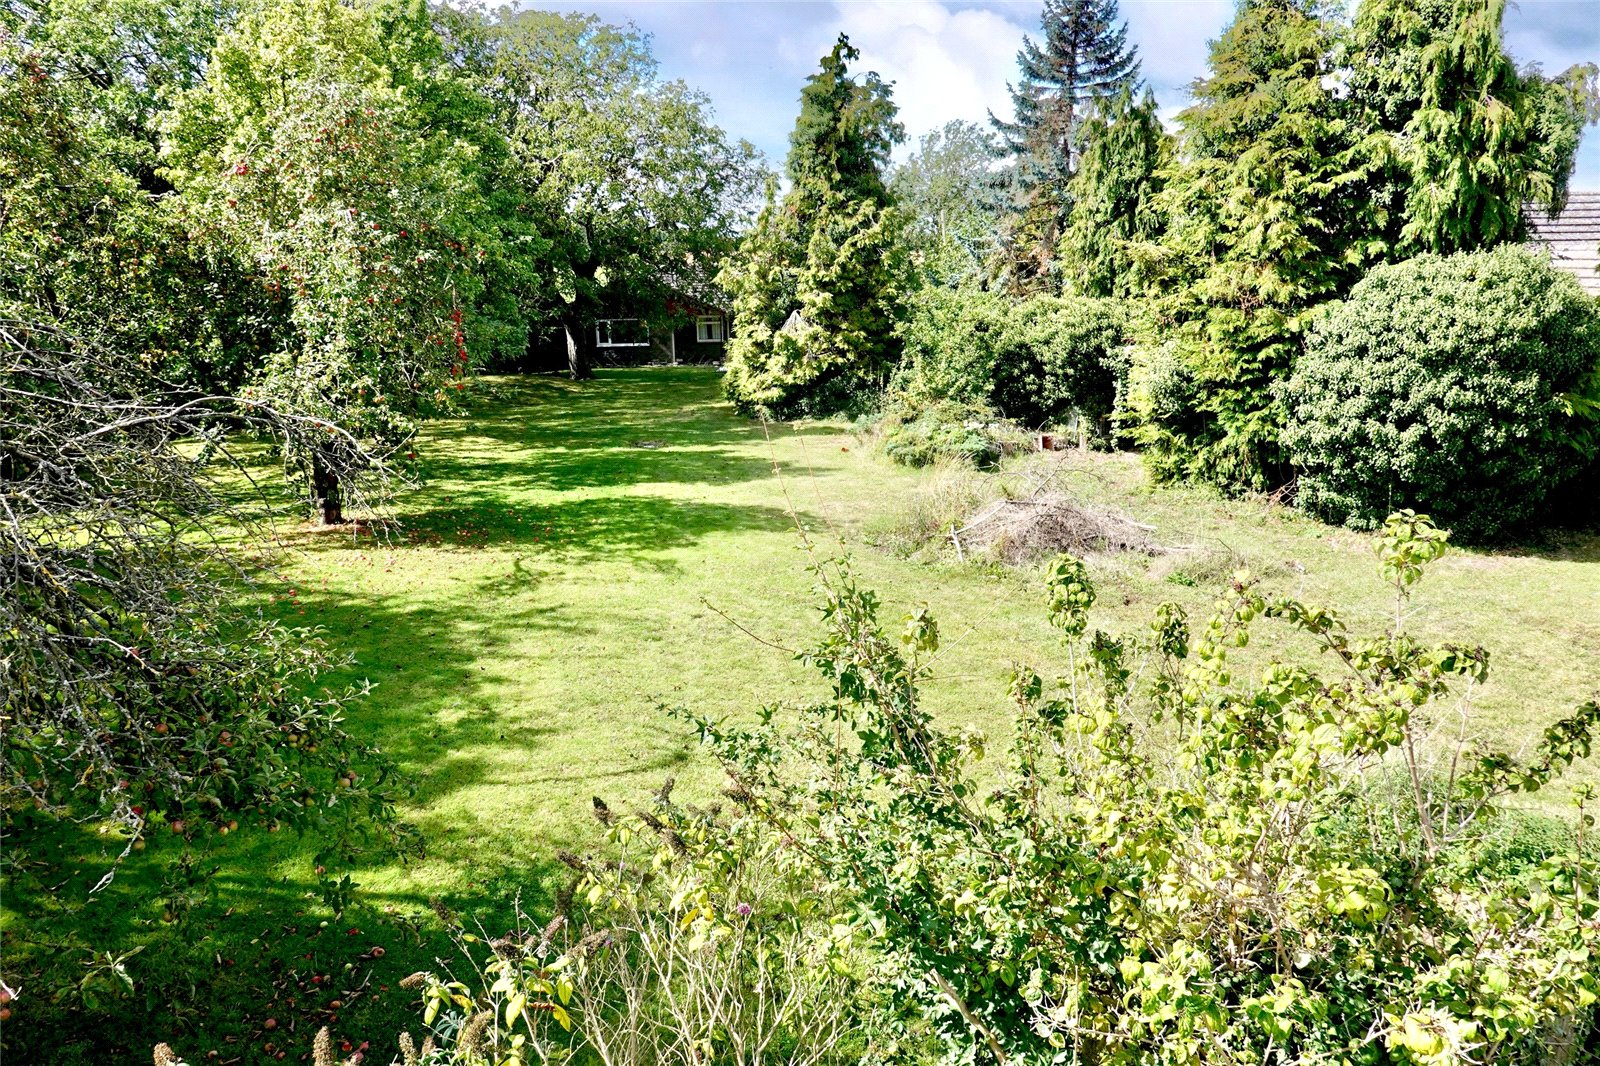 Land-(residential) for sale in Blacksmiths Lane, Abbotsley  - Property Image 1